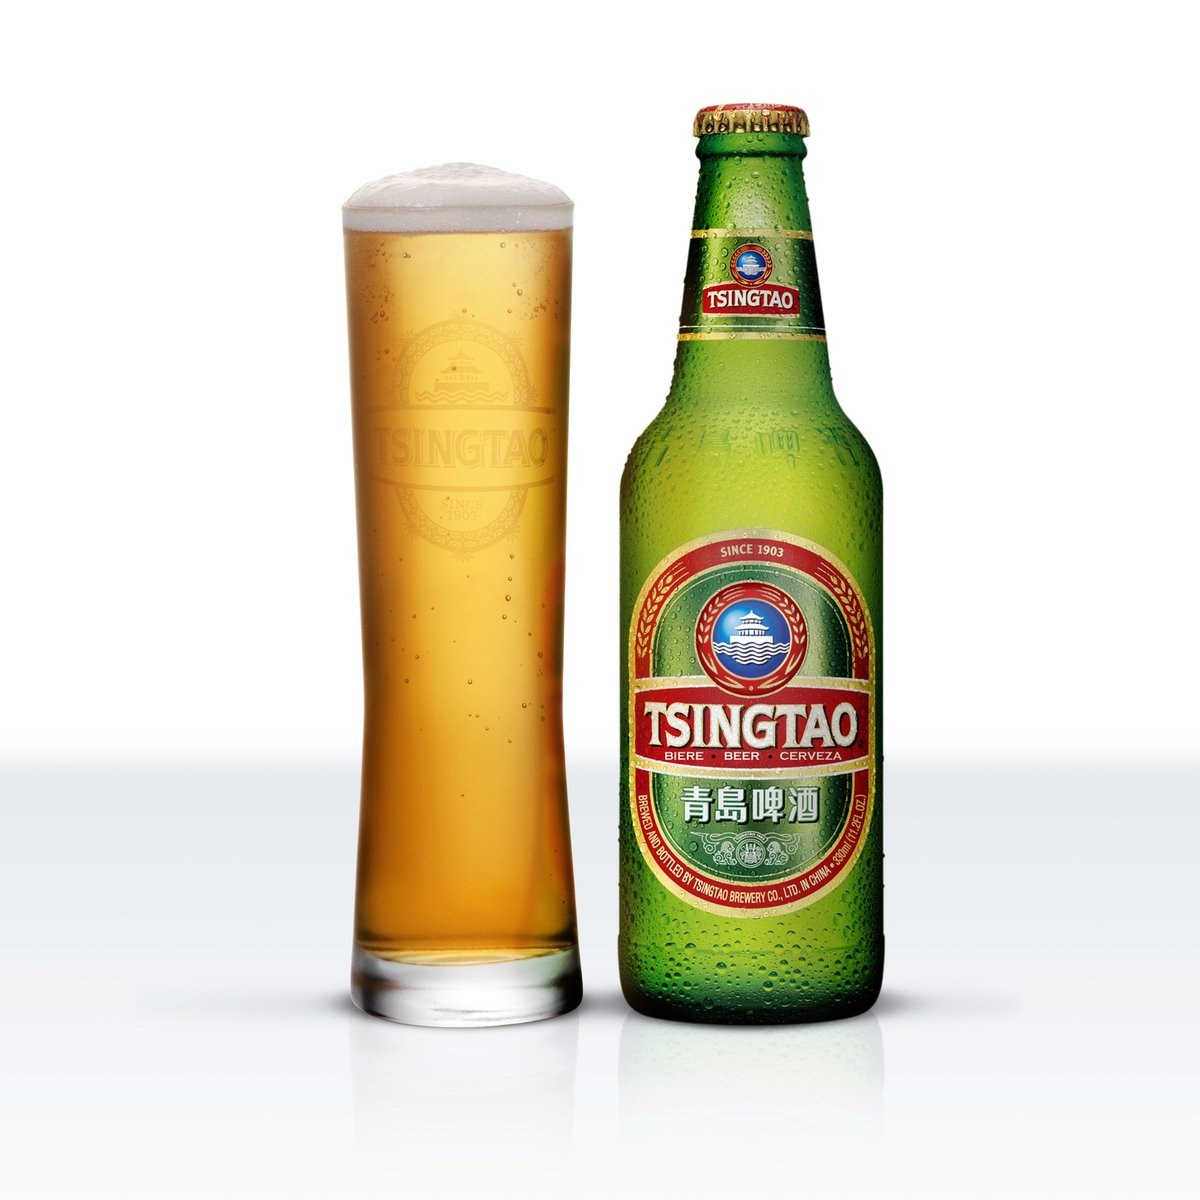 This #ChineseNewYear win a pack of #TsingtaoCNY beer. Follow us & RT to enter. Over 18s only https://t.co/i50lgrPU50